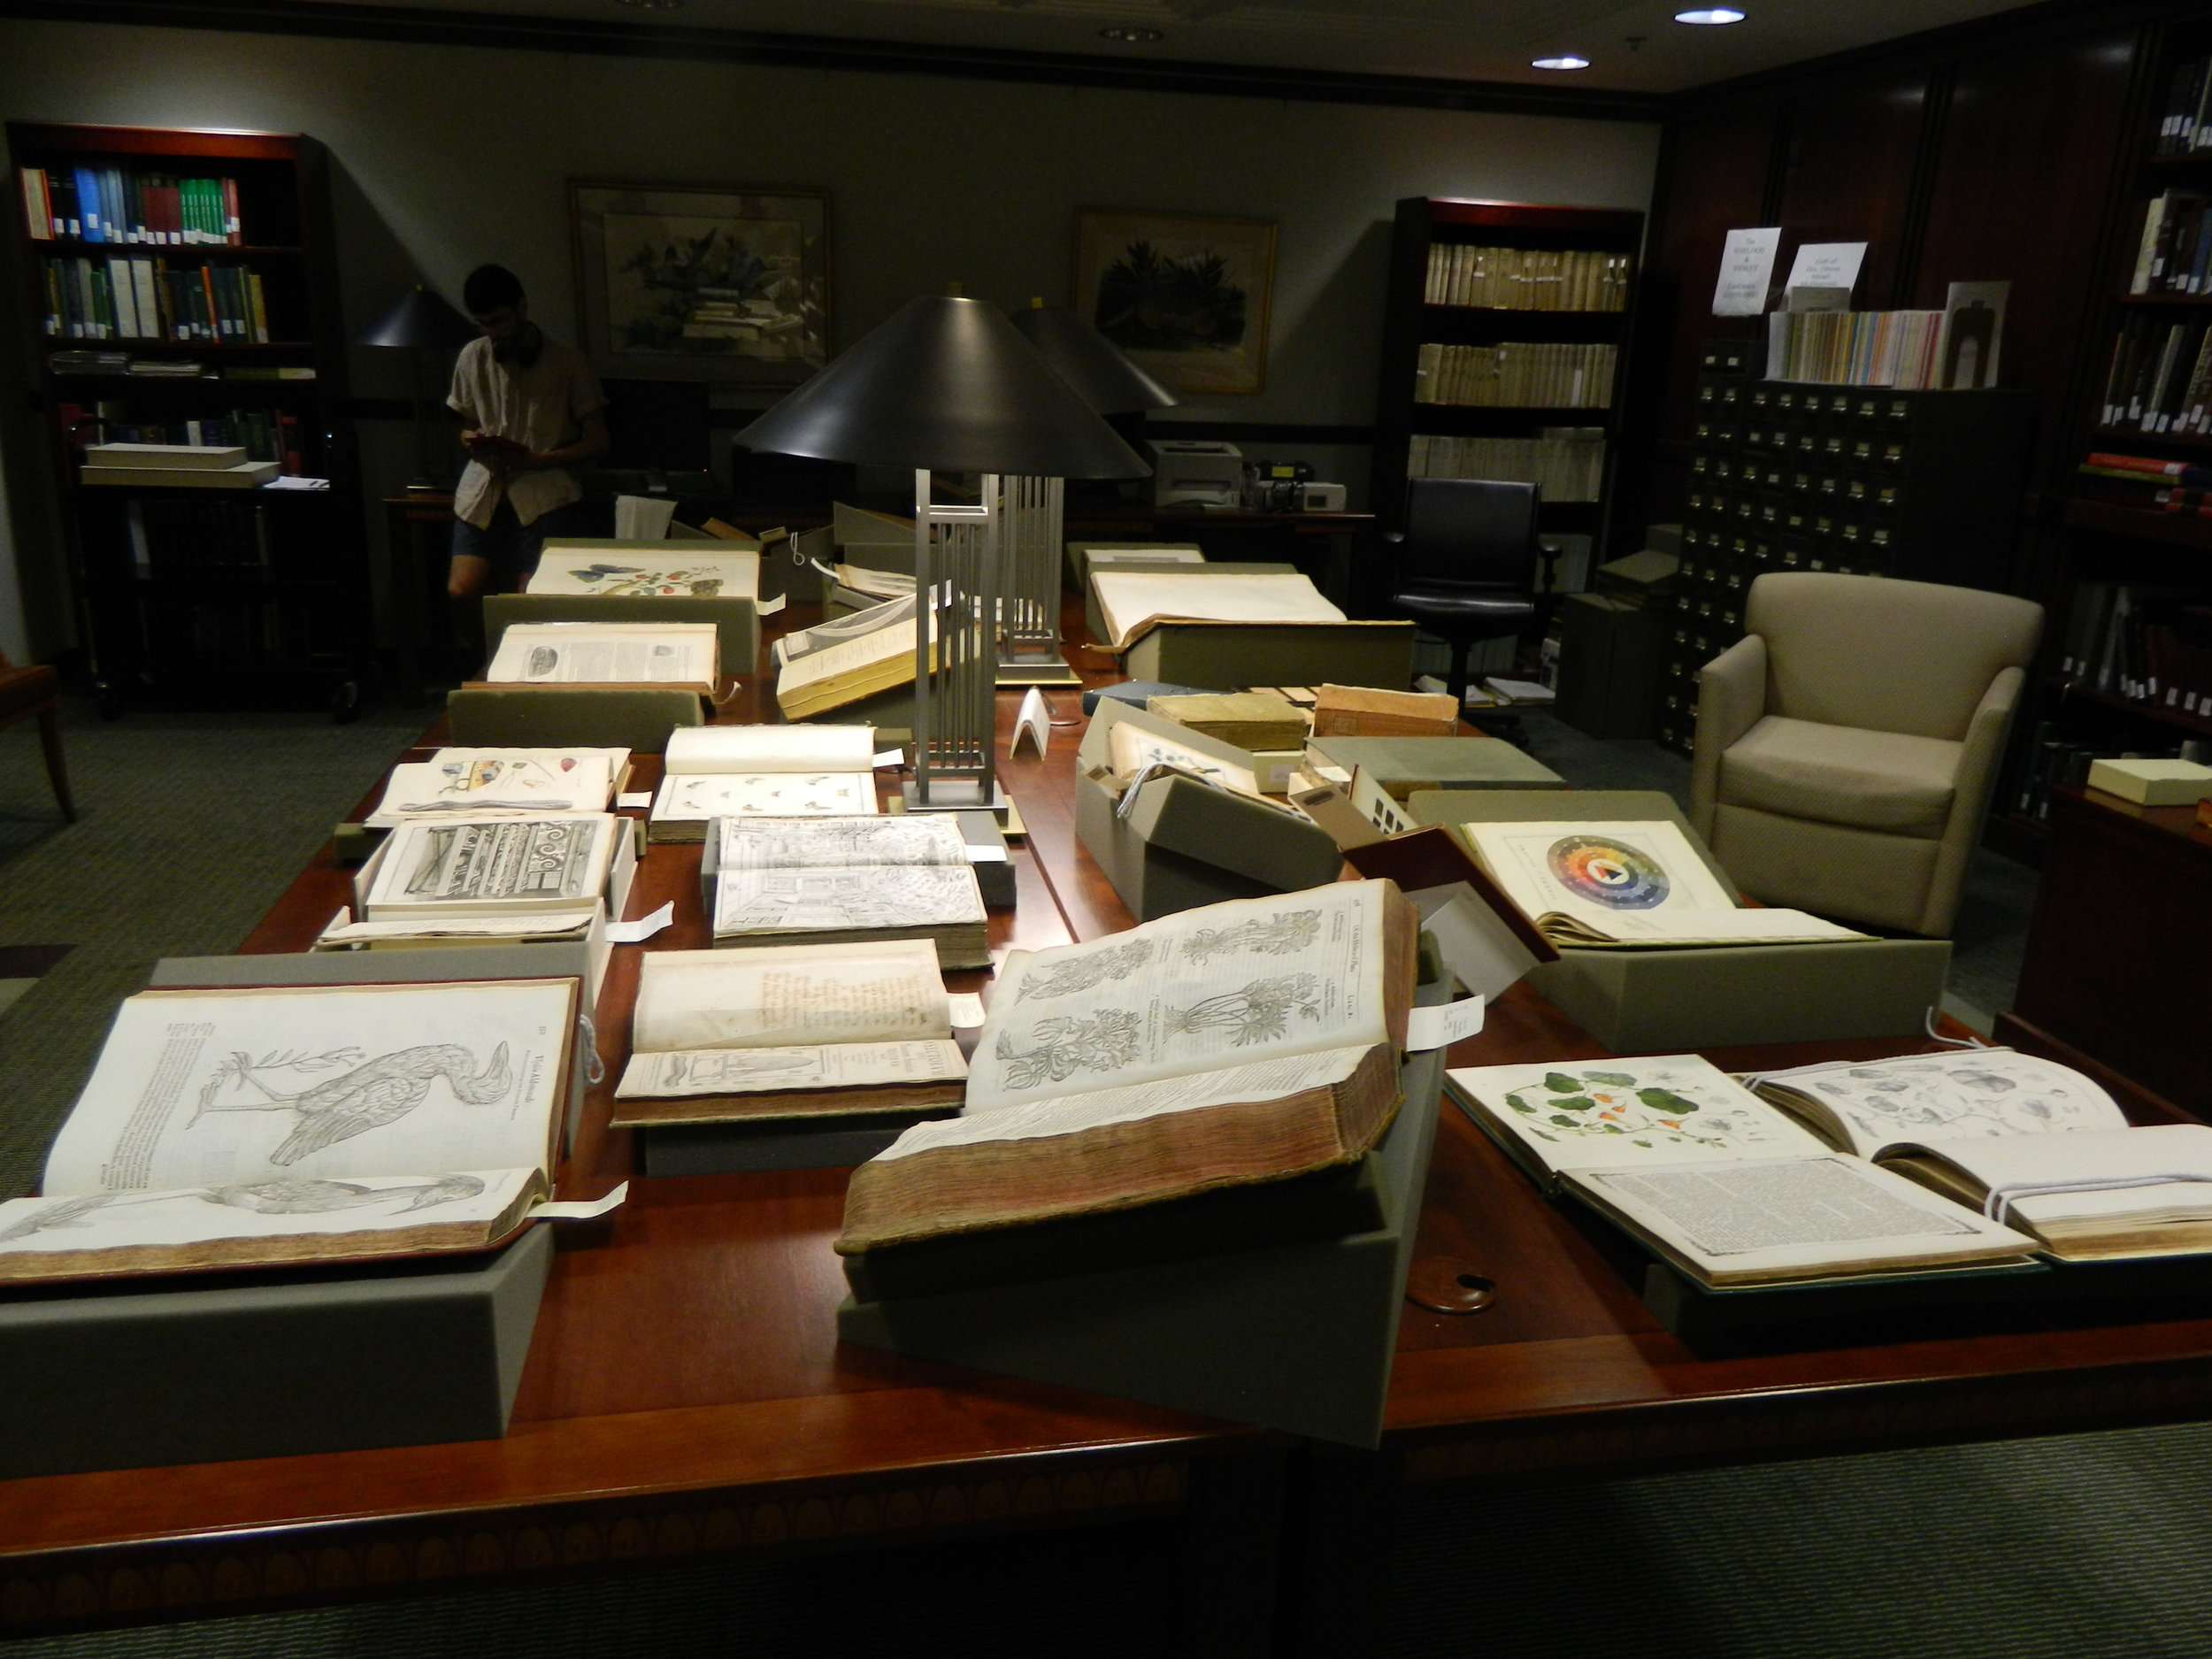 The reading room in the Cullman Library in NMNH. I spent many afternoons here in 2015...